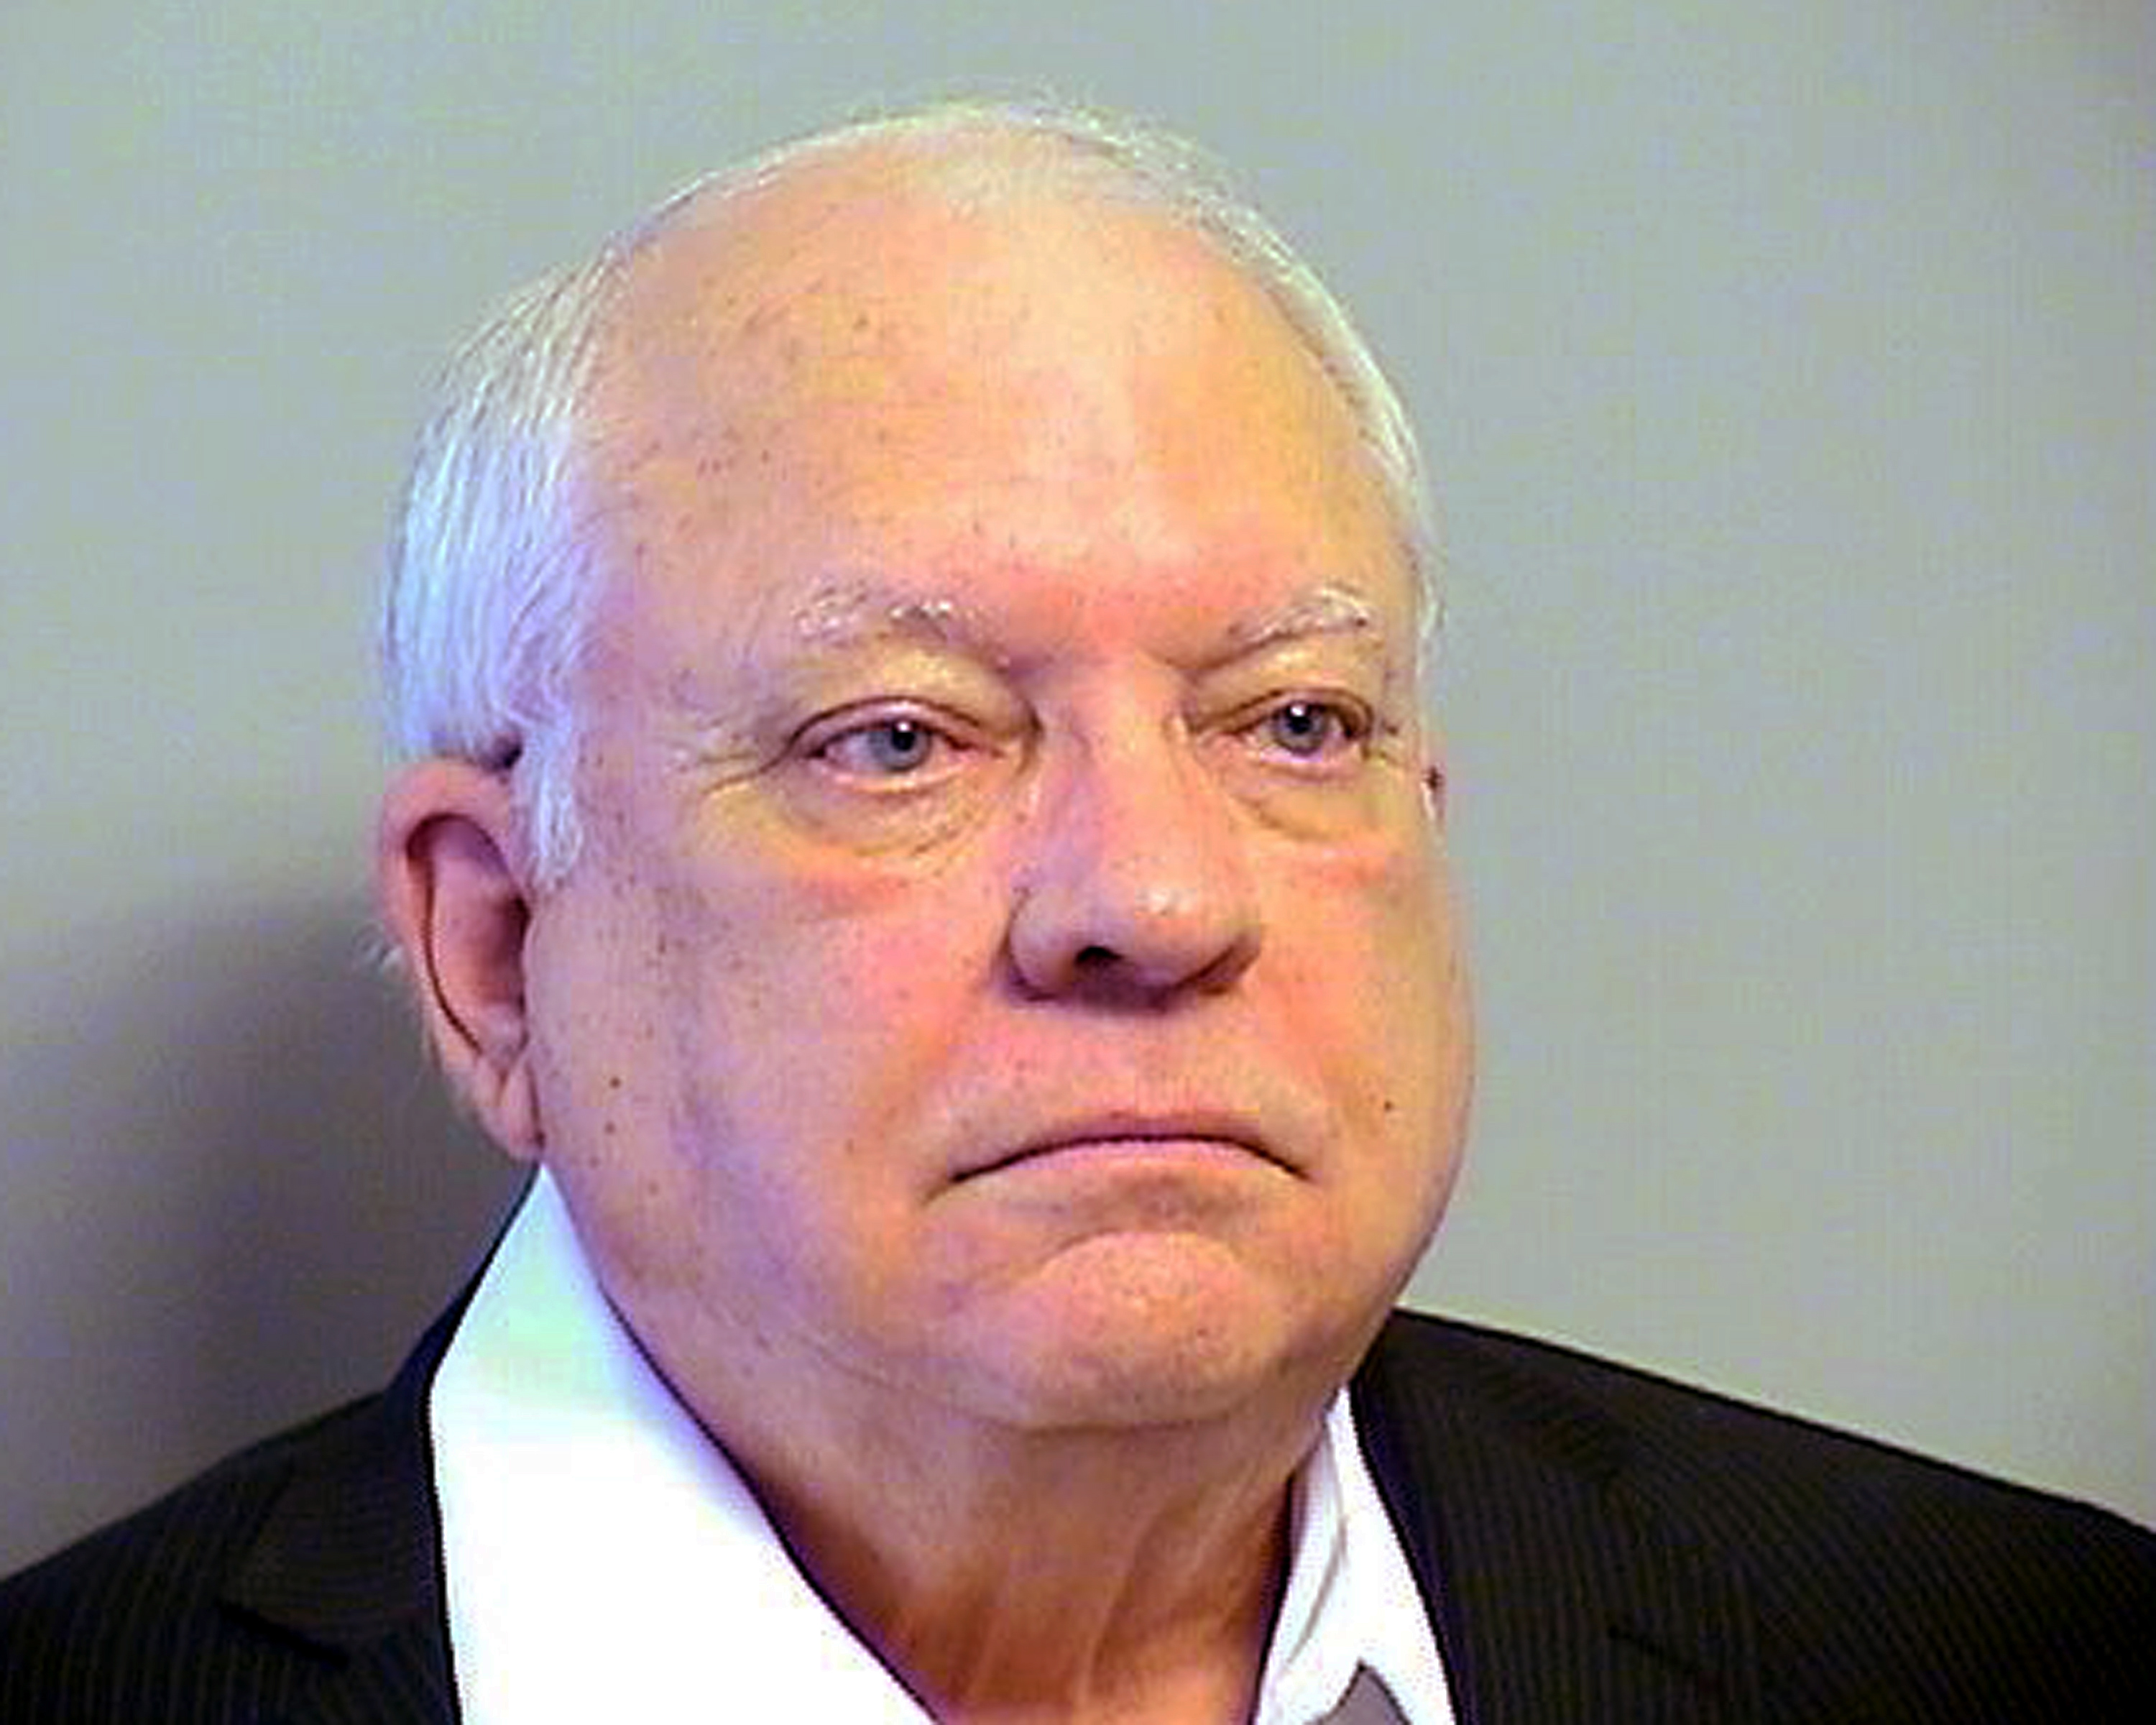 Robert Bates. The 73-year-old Oklahoma reserve sheriff's deputy, who authorities said fatally shot a suspect after confusing his stun gun and handgun, was booked into the county jail on a manslaughter charge in Tulsa, Okla. on April 14, 2015.